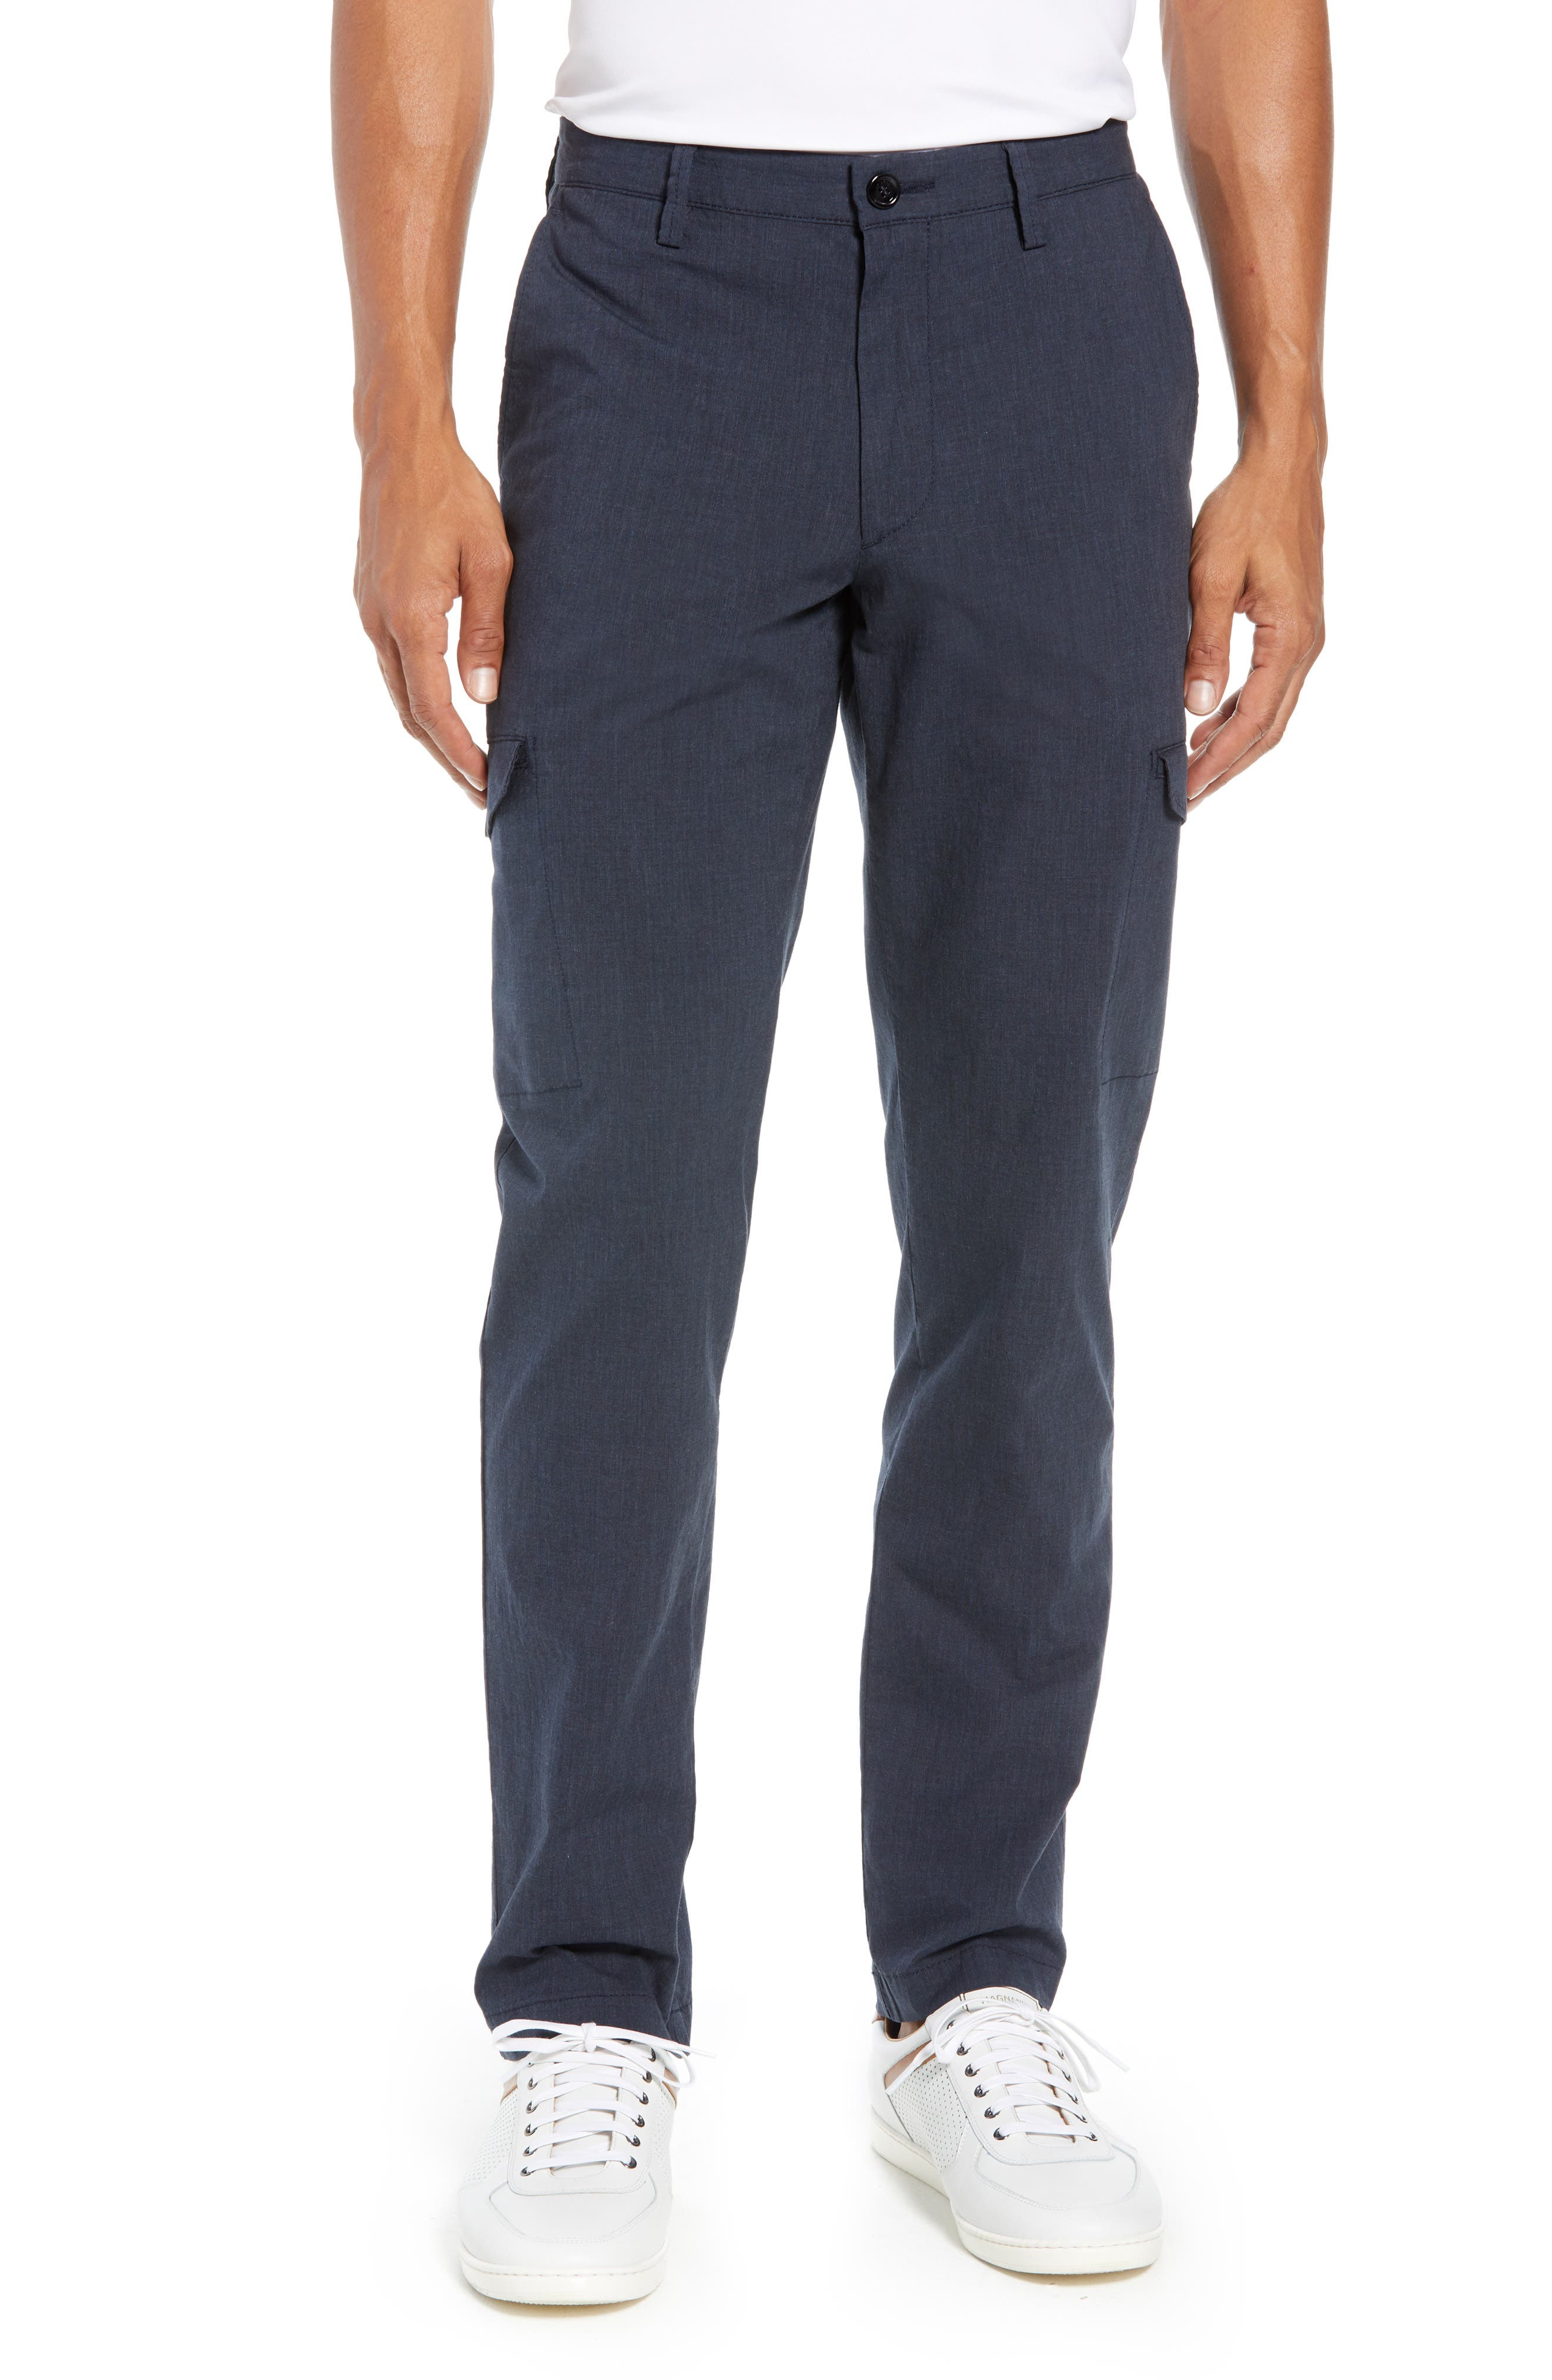 Kailo Slim Fit Cargo Pants,                             Main thumbnail 1, color,                             480